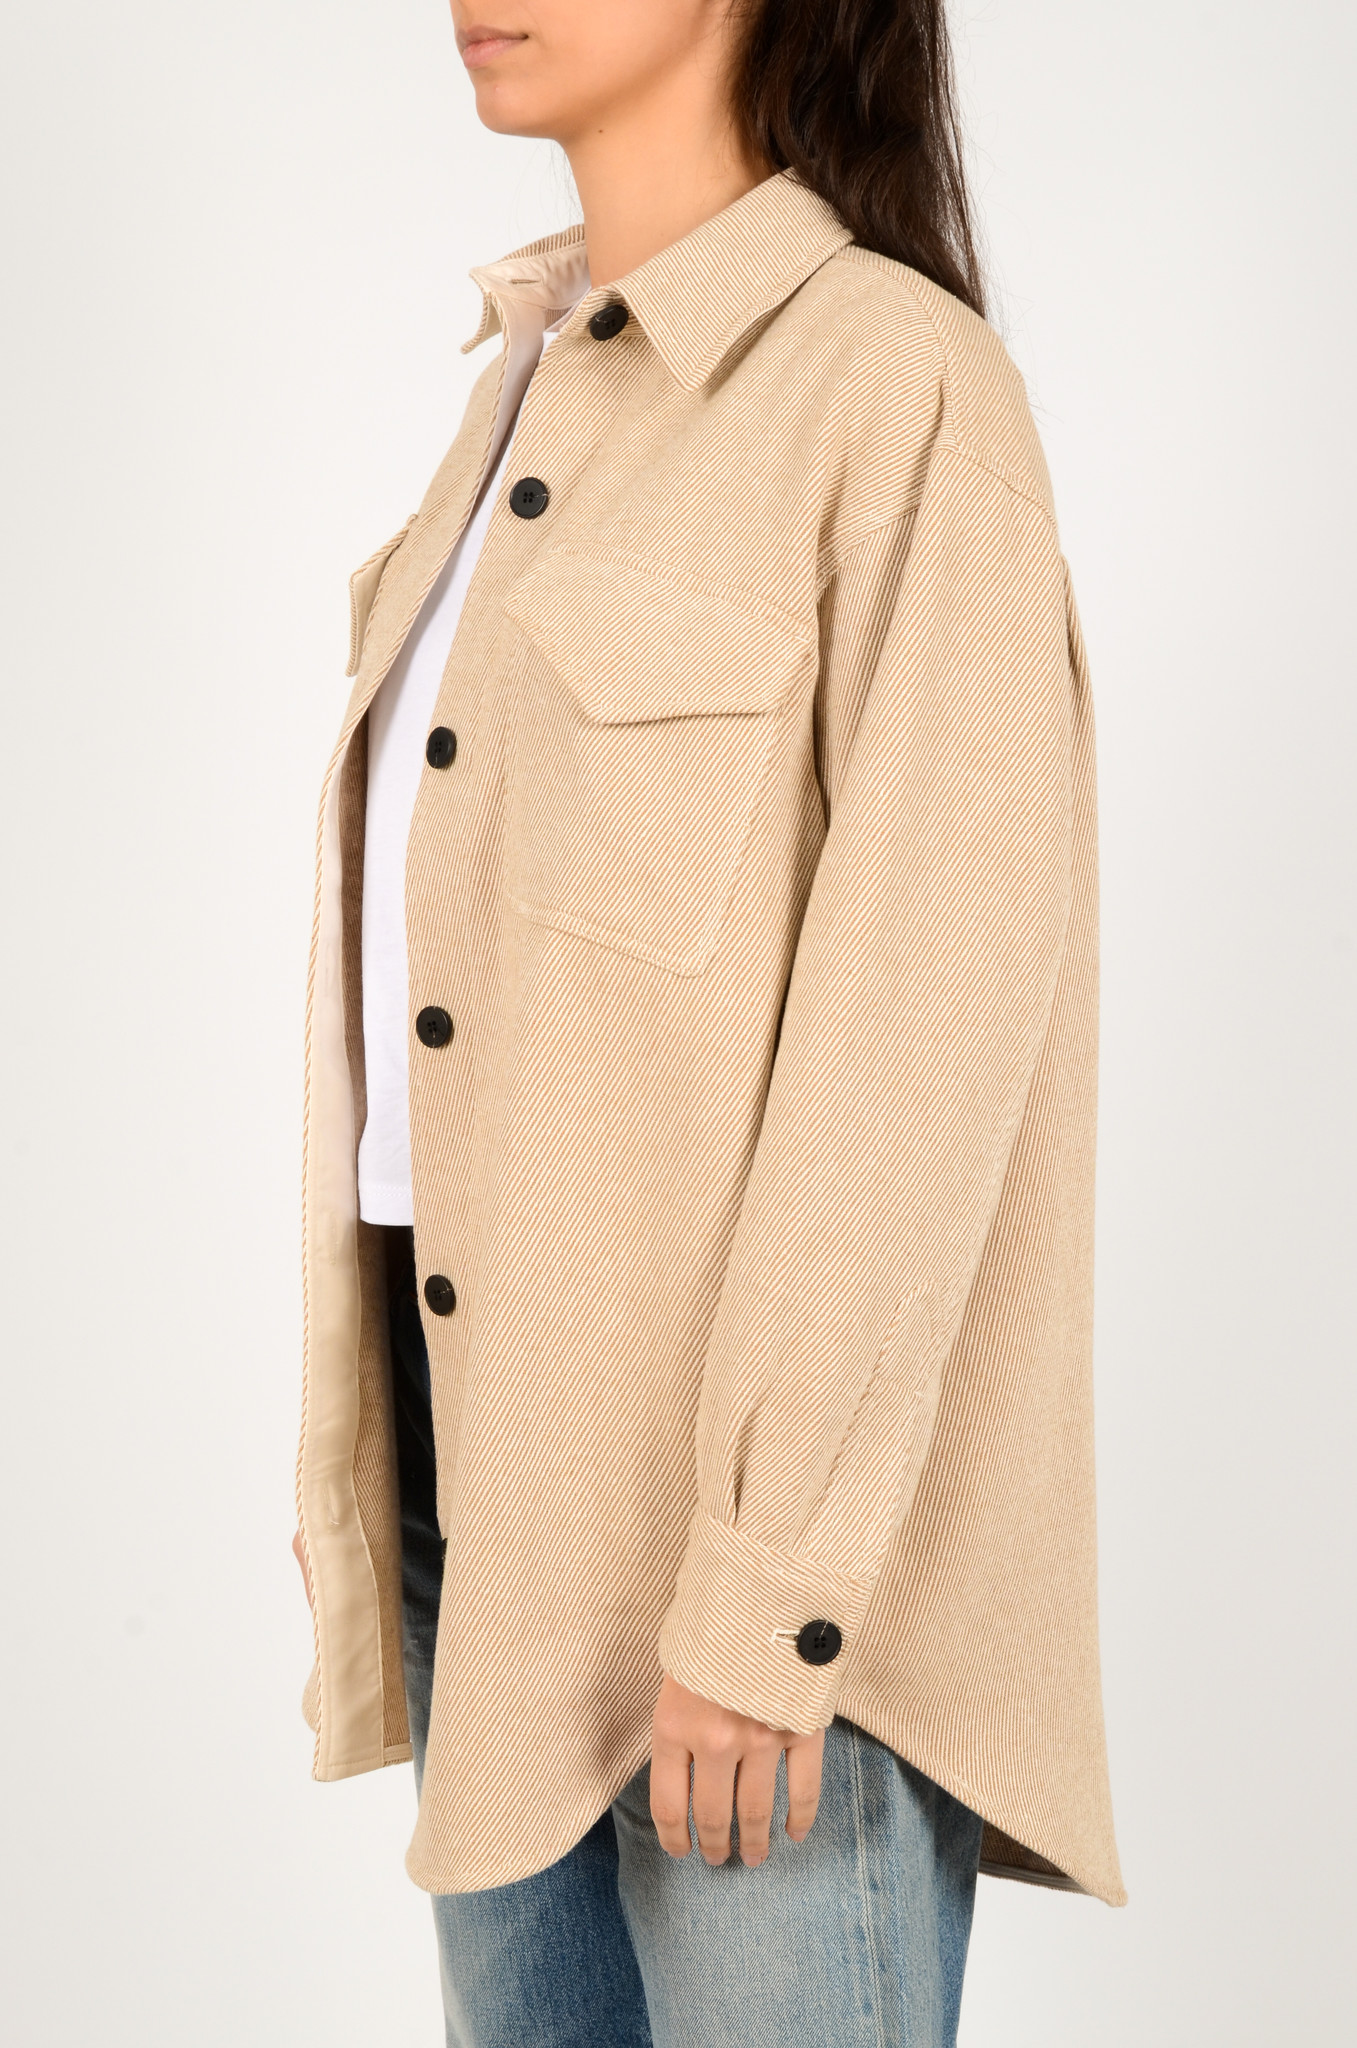 PALERMO SHIRT COAT IN CAMEL-3